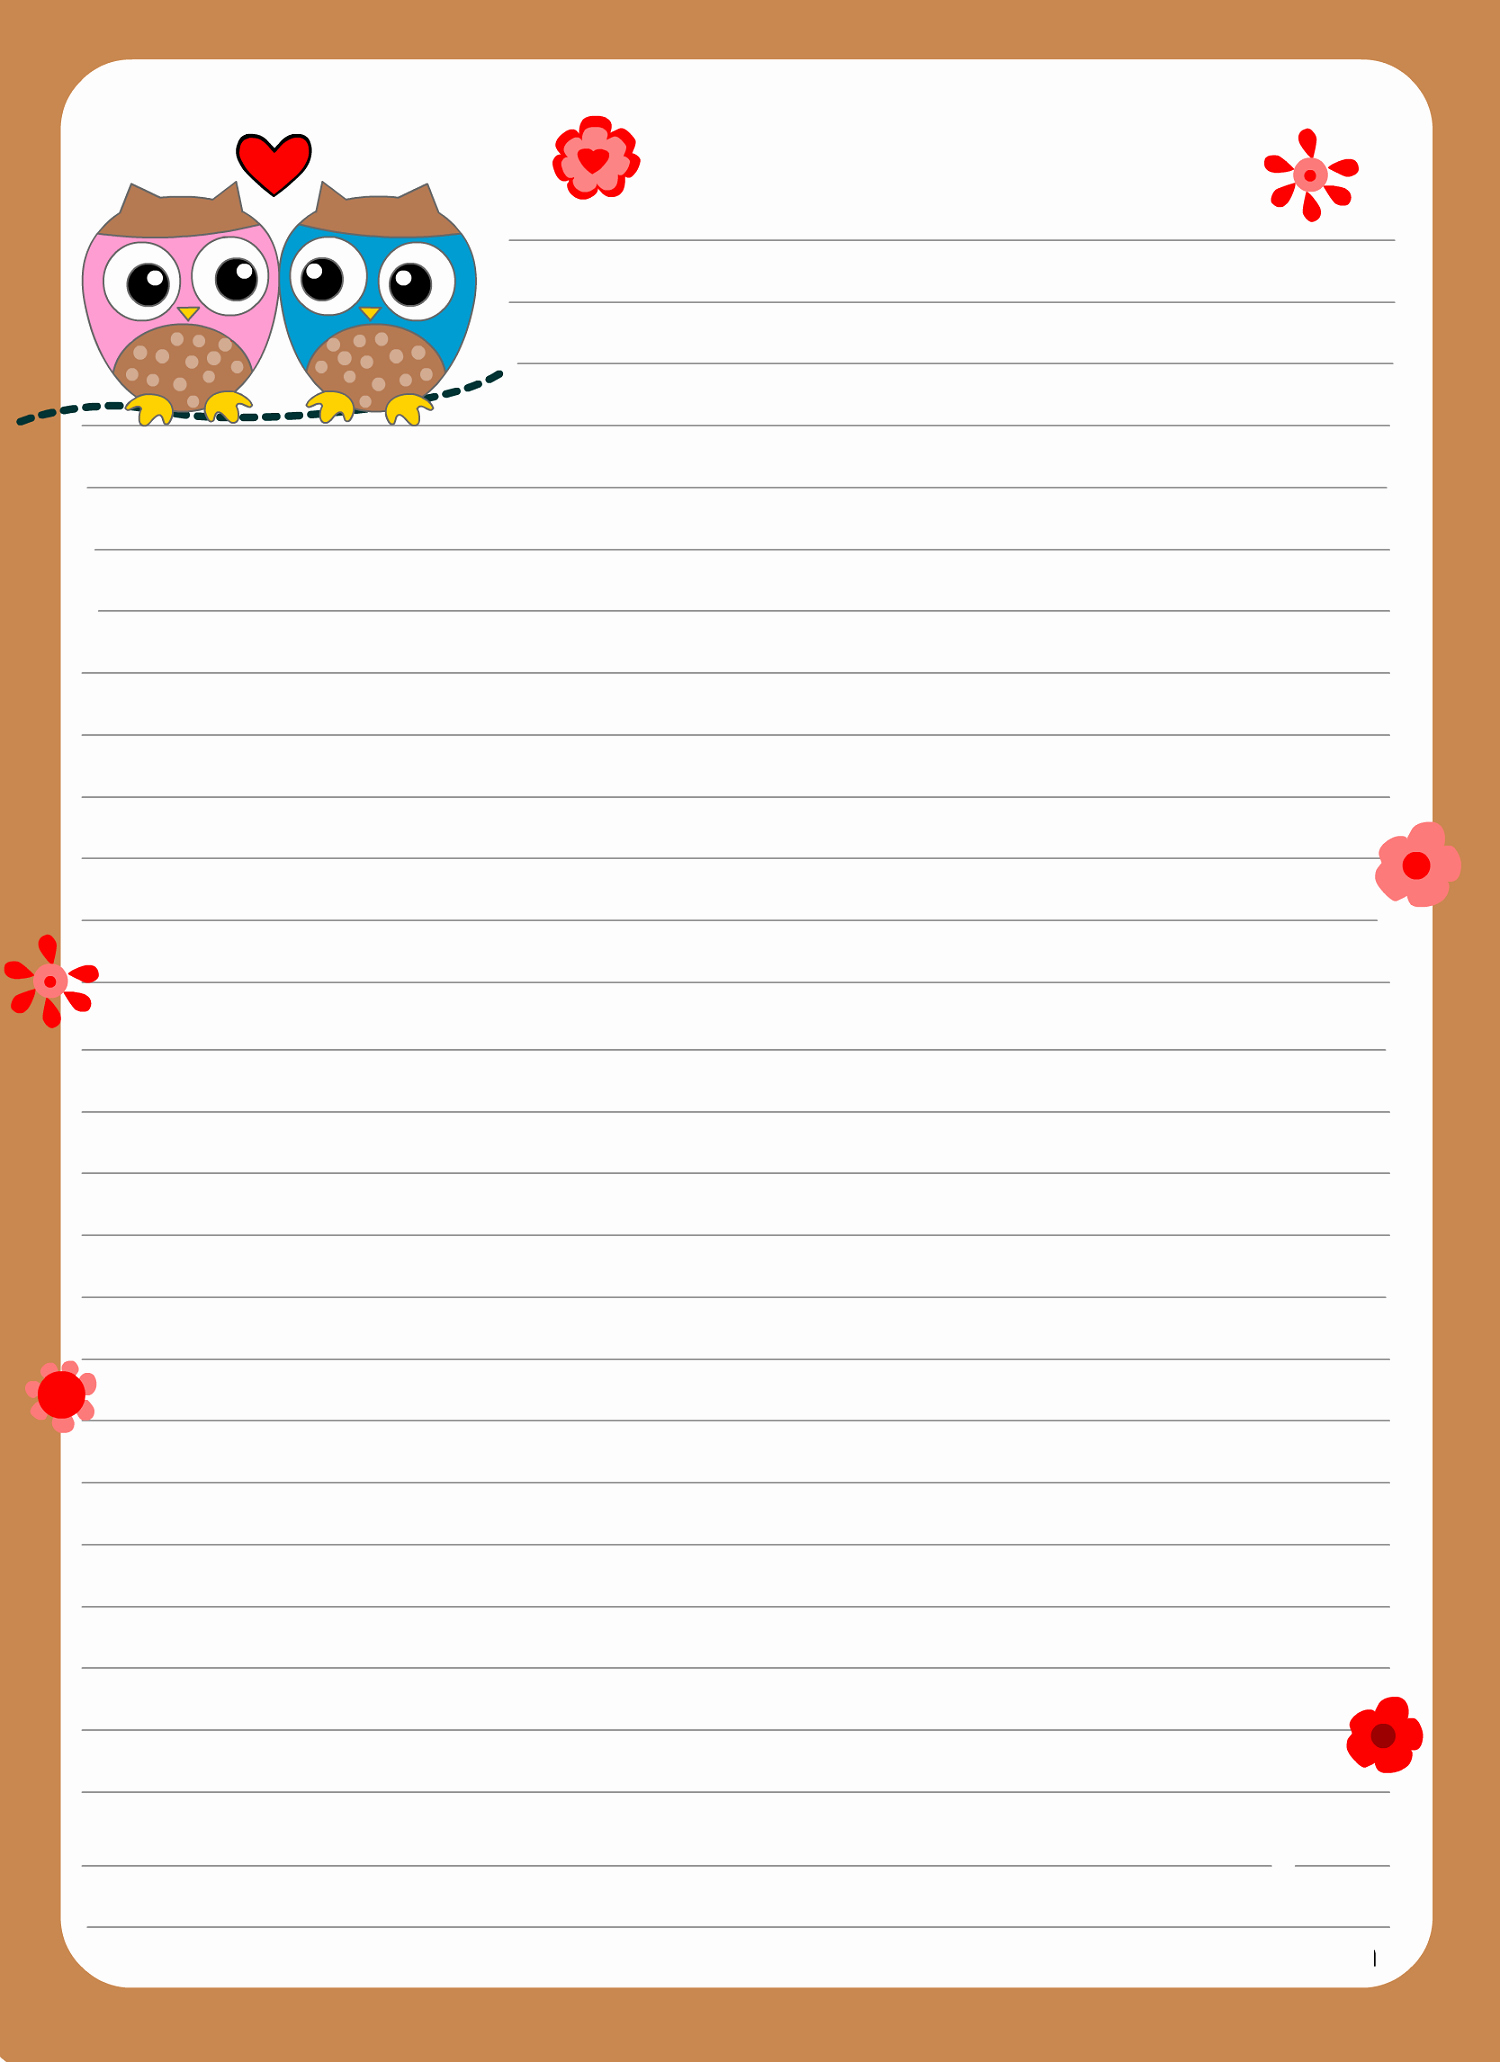 Lined Letter Writing Paper Luxury Lined Paper for Writing for Cute Writing Paper